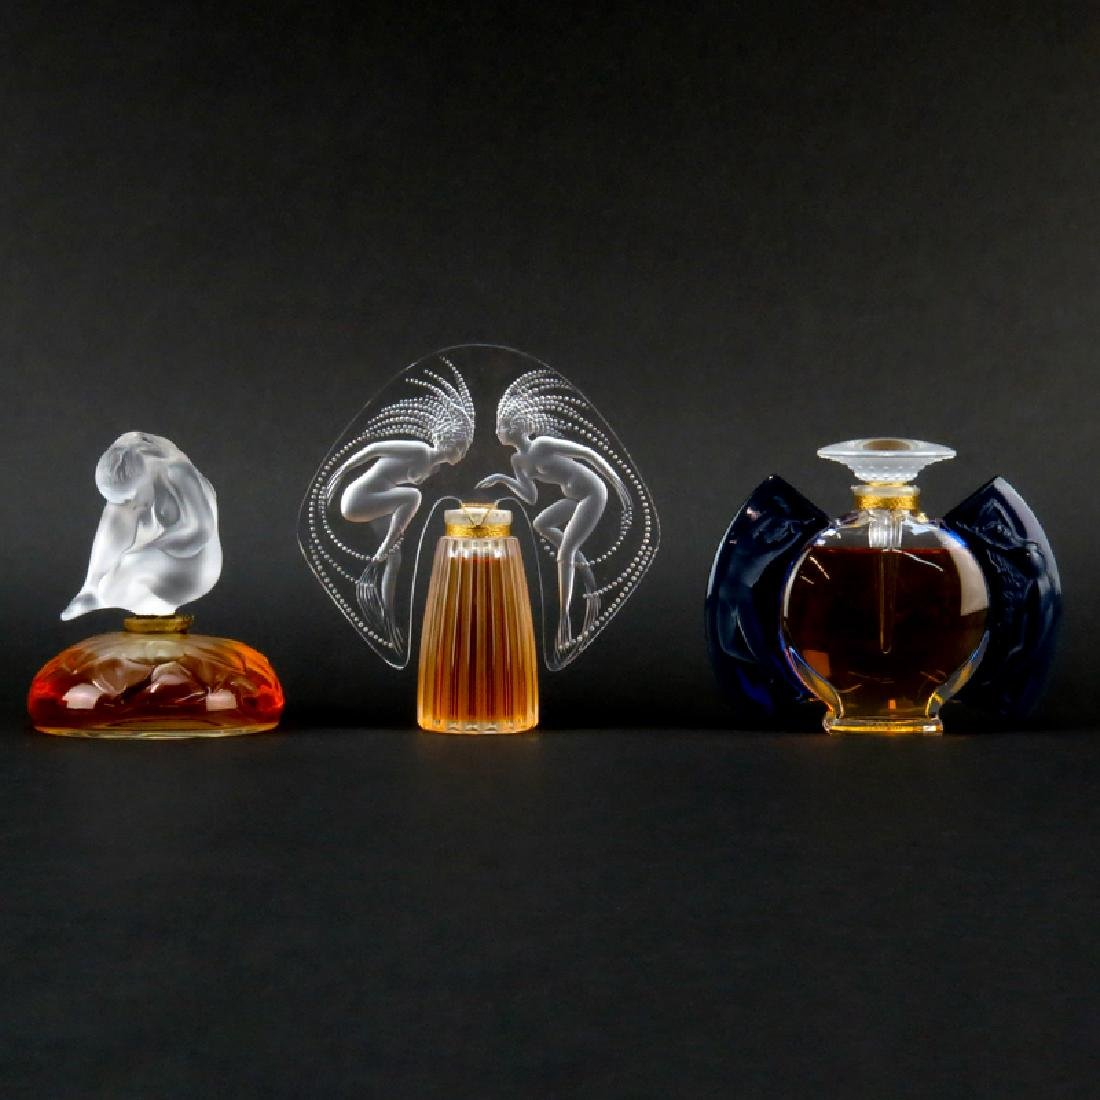 Three (3) Lalique Crystal Perfume Bottles. Includes